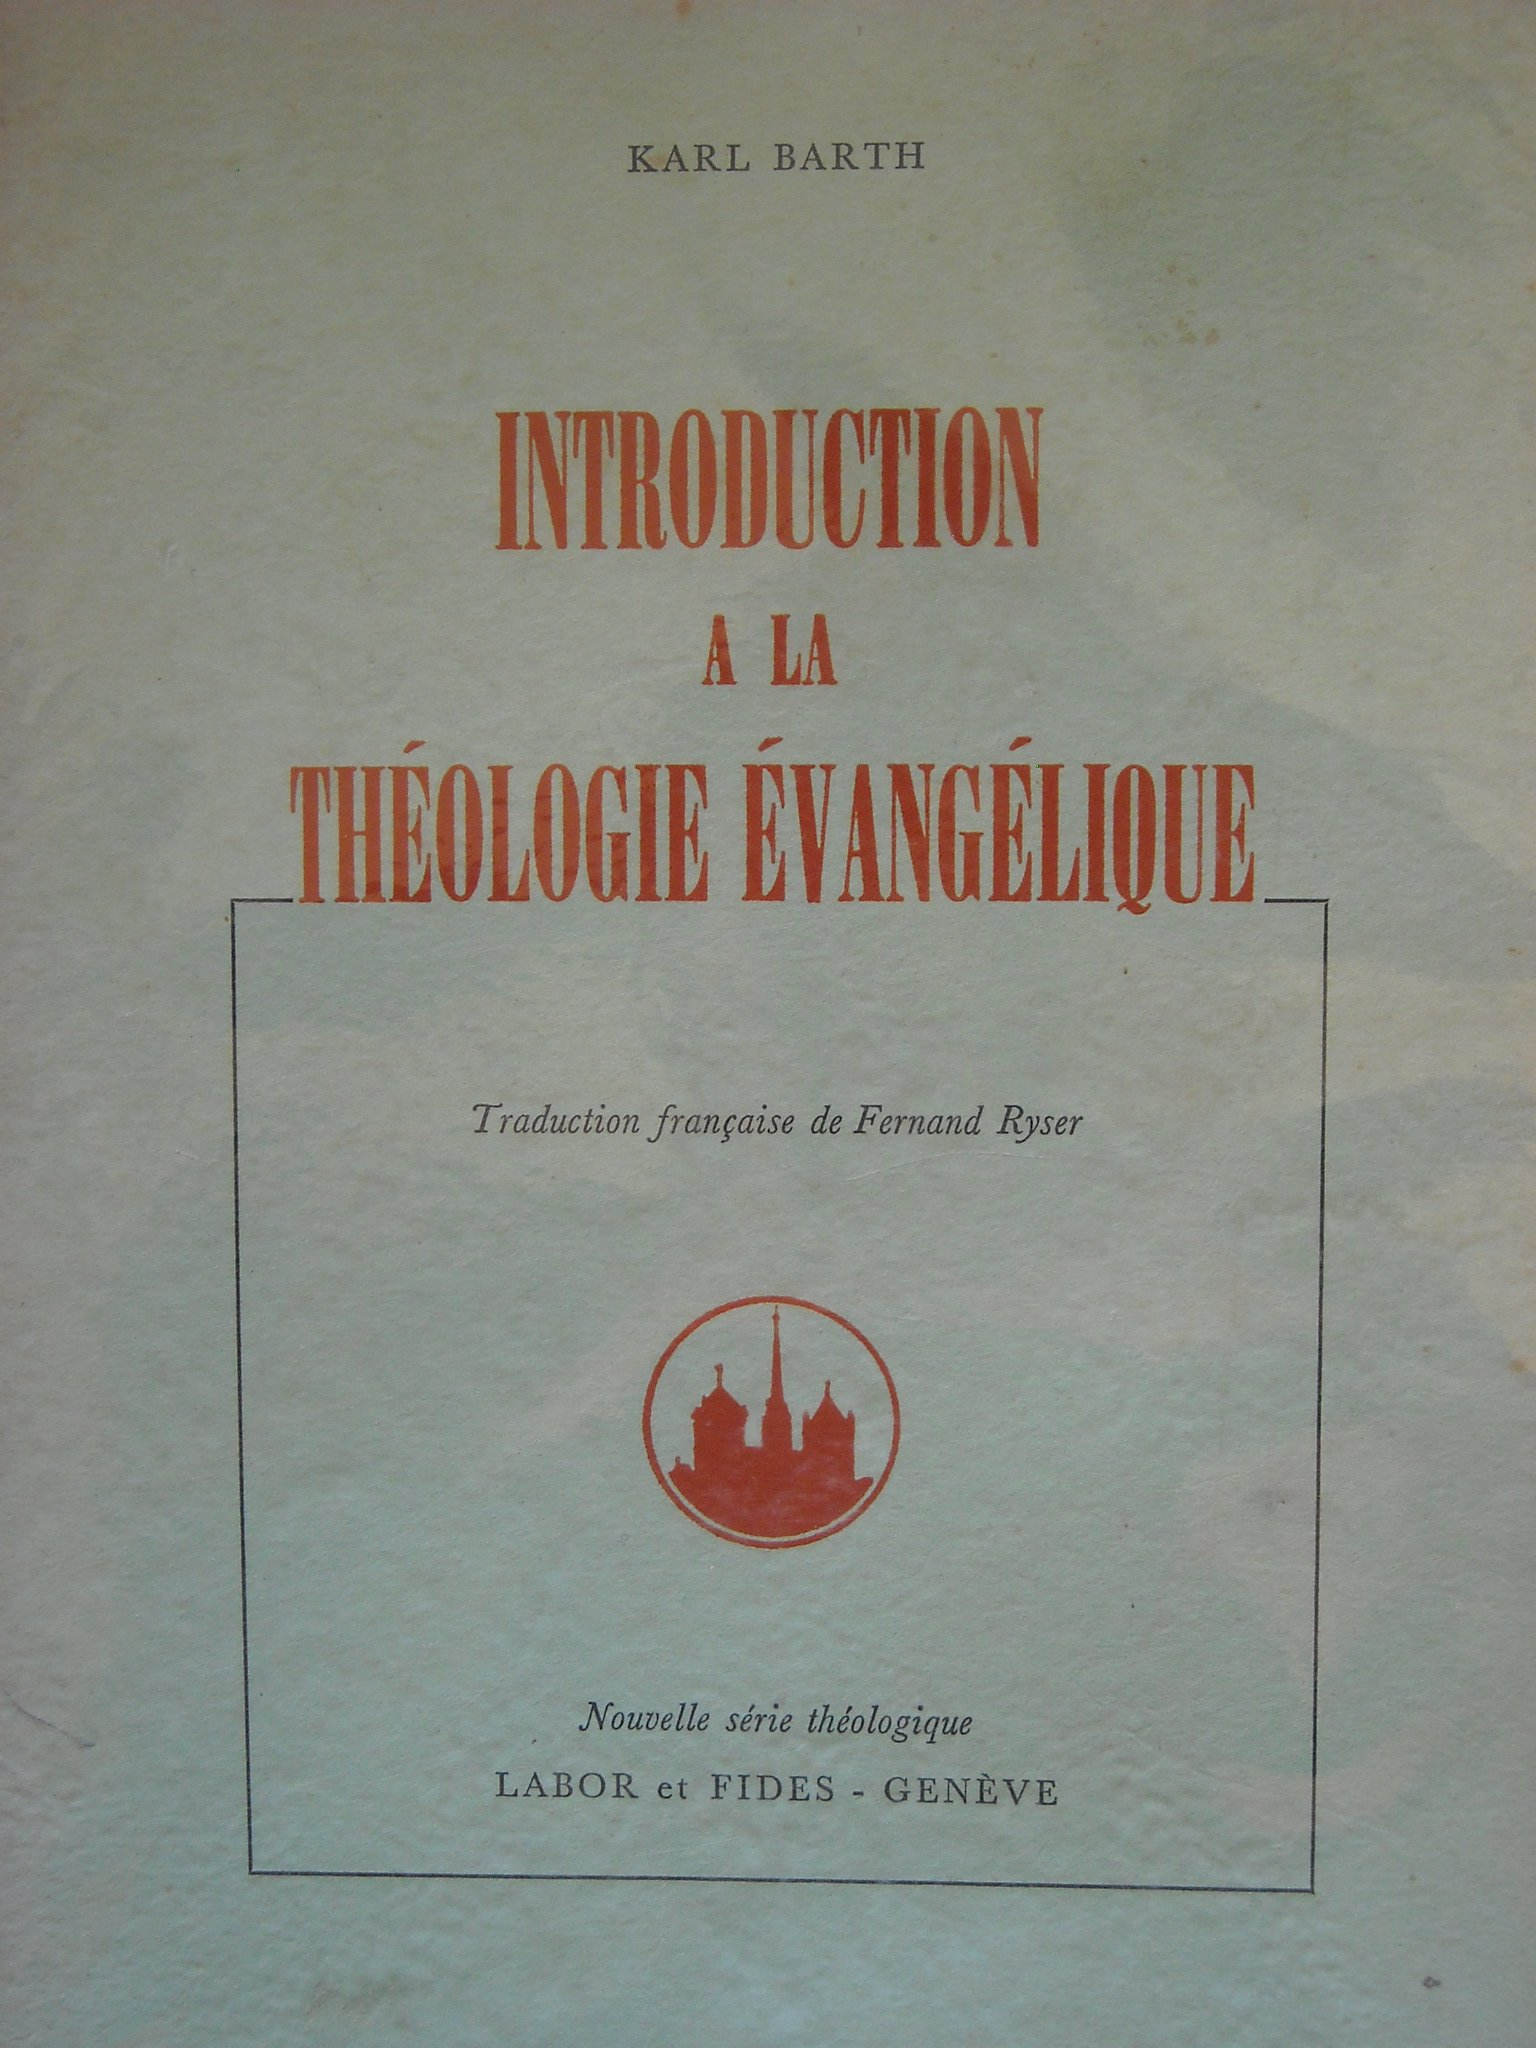 Introduction à la théologie évangélique, Barth, Karl